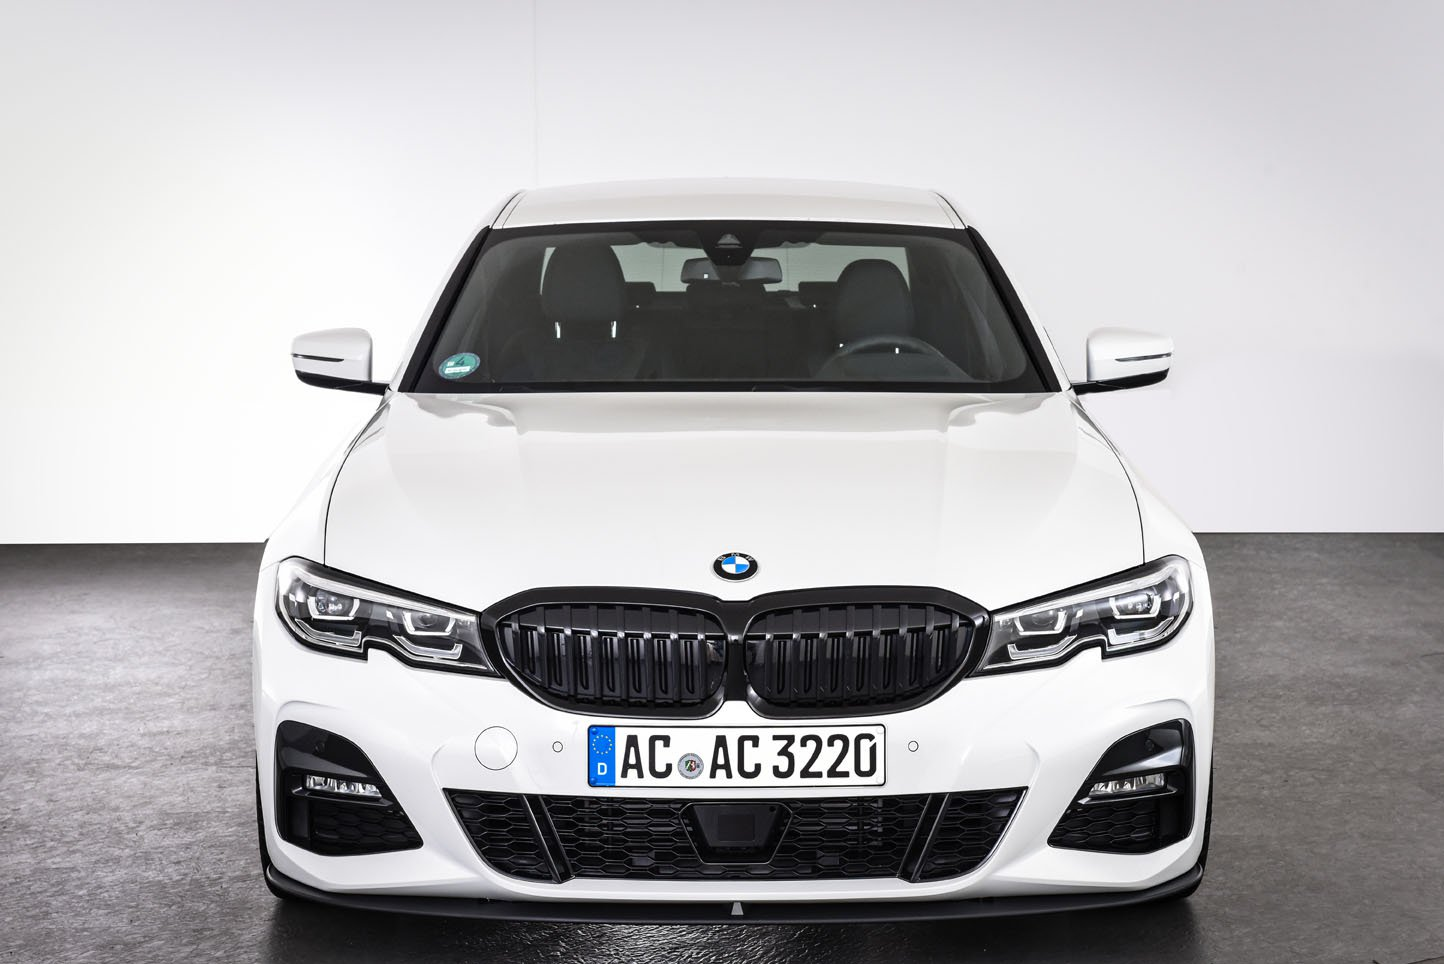 Name:  3c33148e-ac-schnitzer-tuning-parts-for-the-bmw-3-series-g20-9.jpg